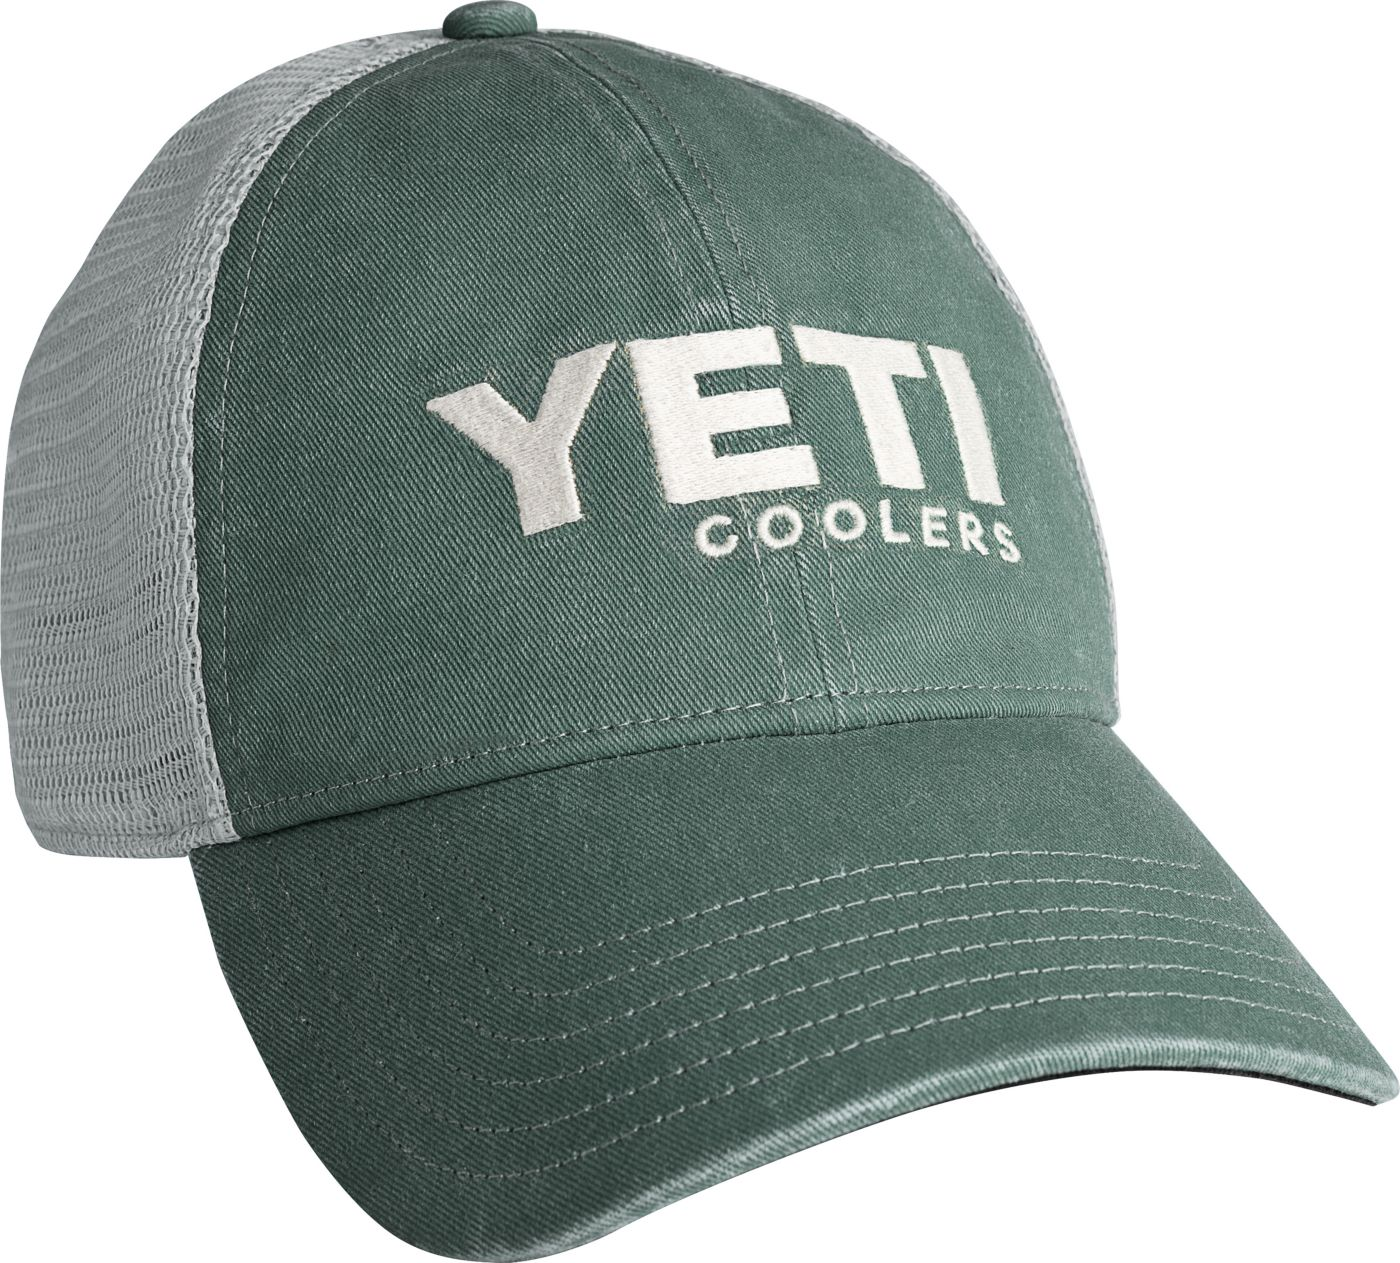 YETI Men's Washed Low Profile Trucker Cap